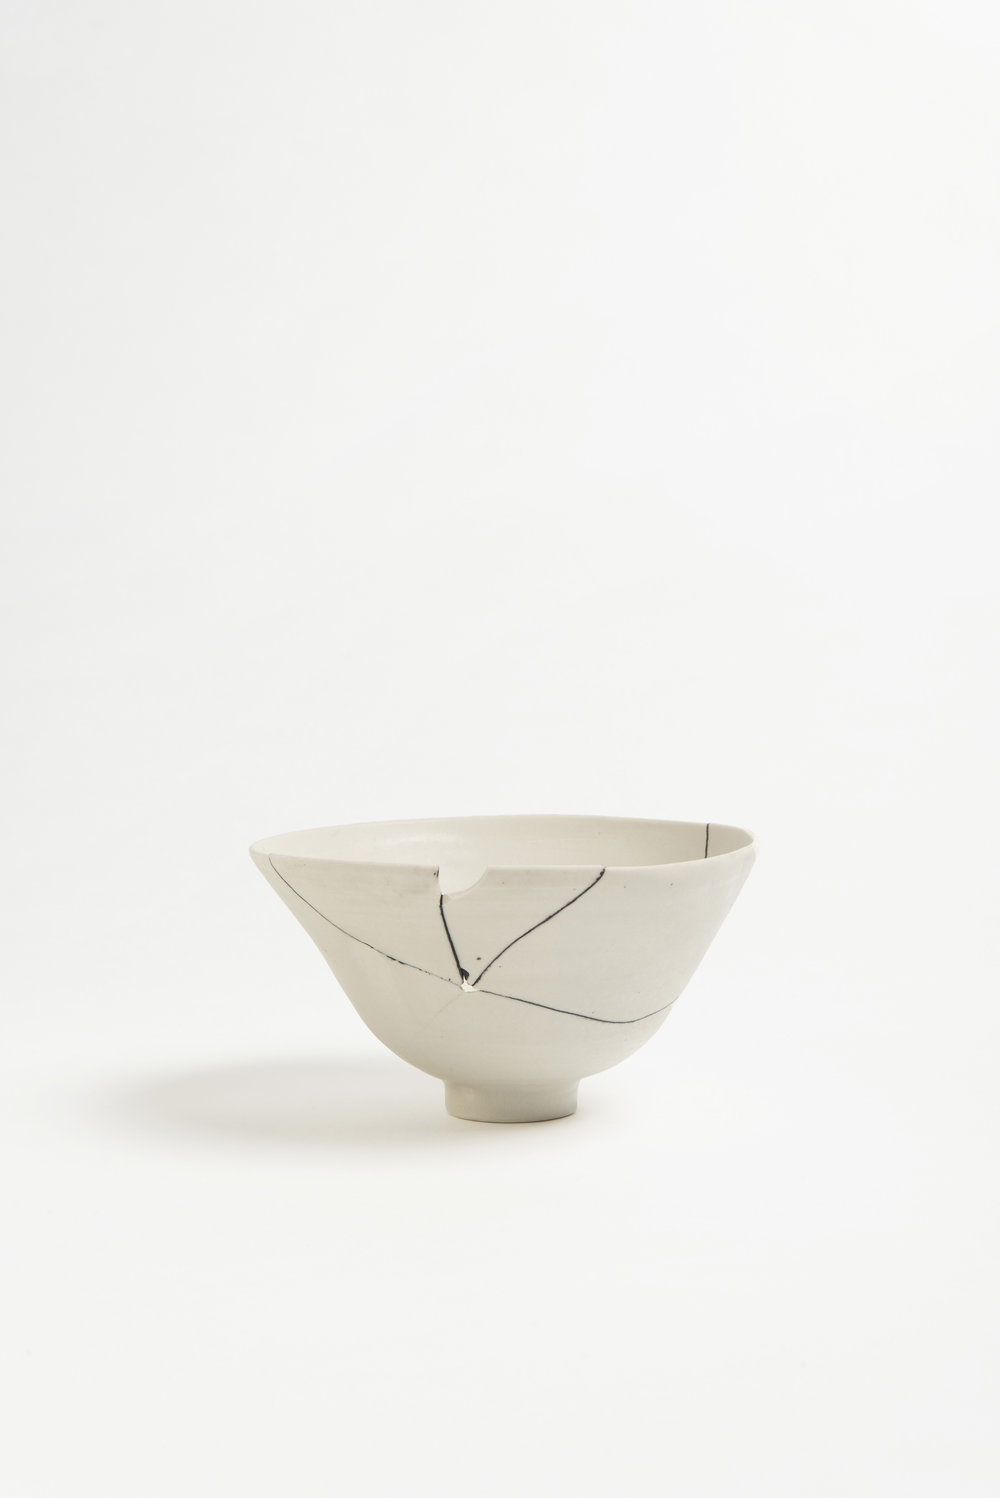 white-fracture-series-bowl-romy-northover-ceramics-the-garnered-02.jpg